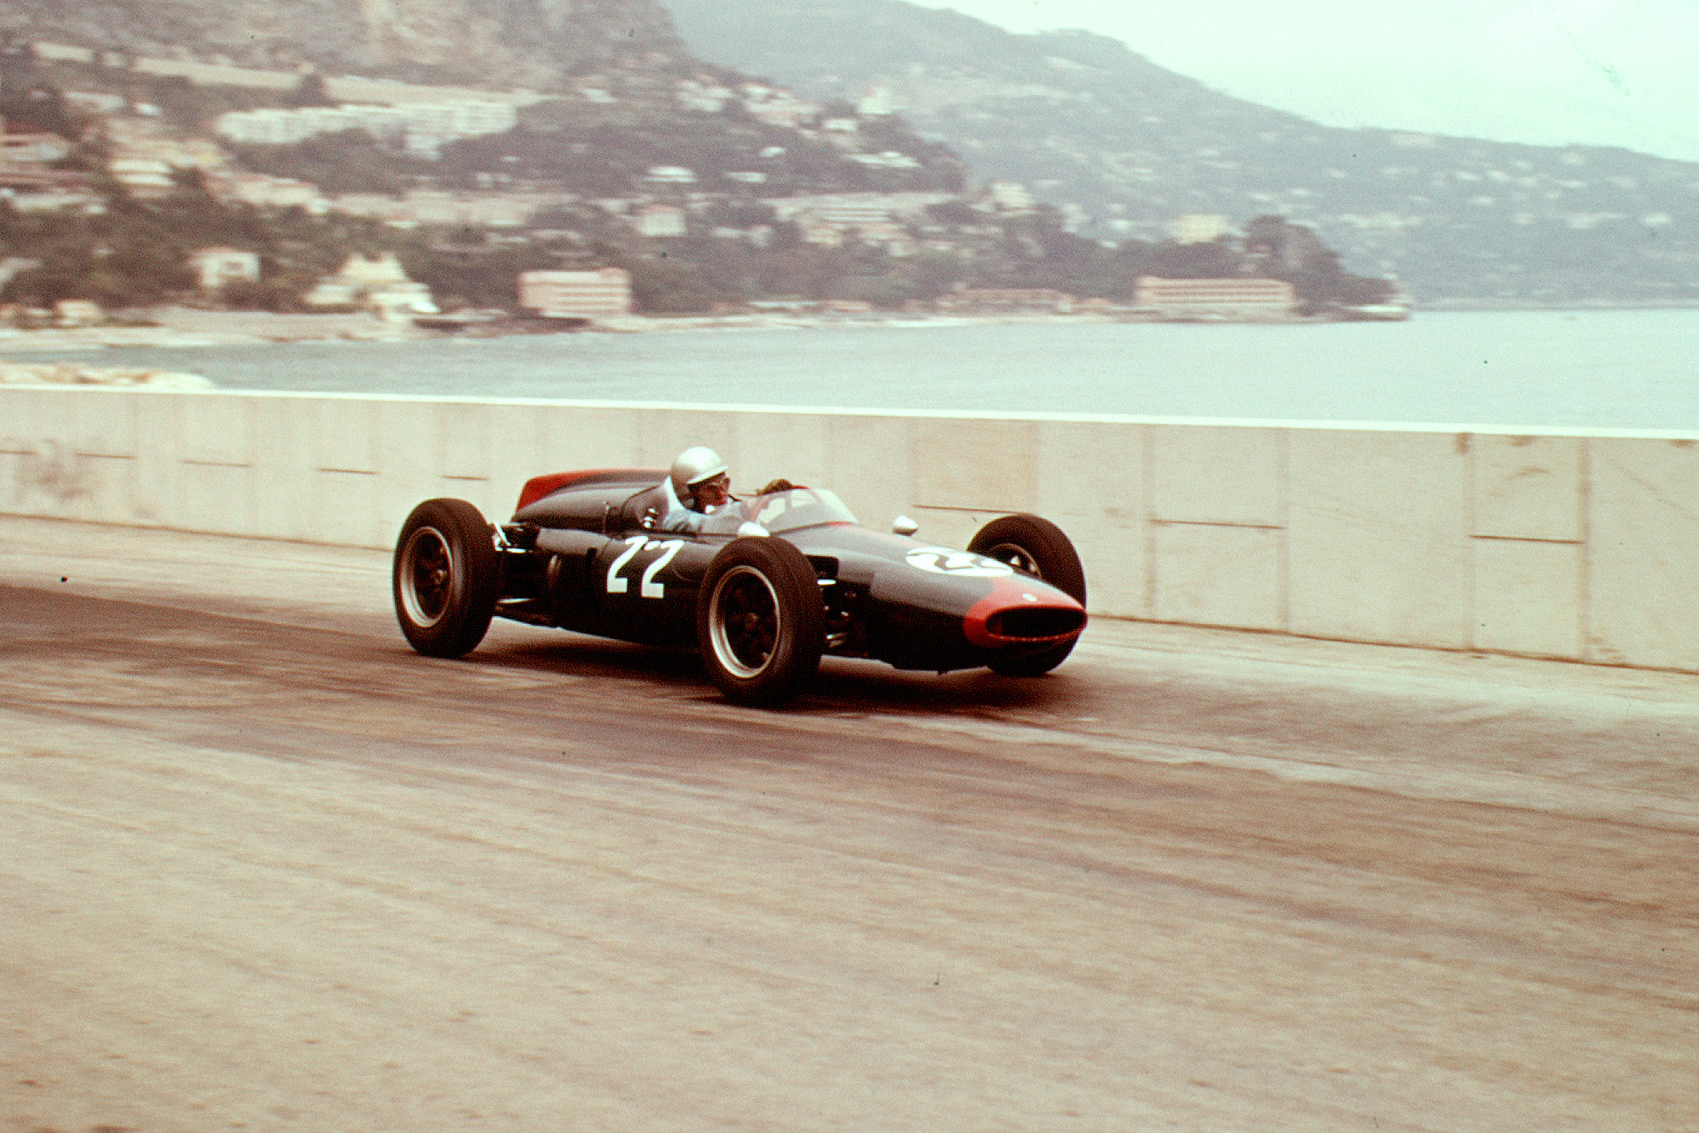 John Surtees in his Cooper T53 Climax.